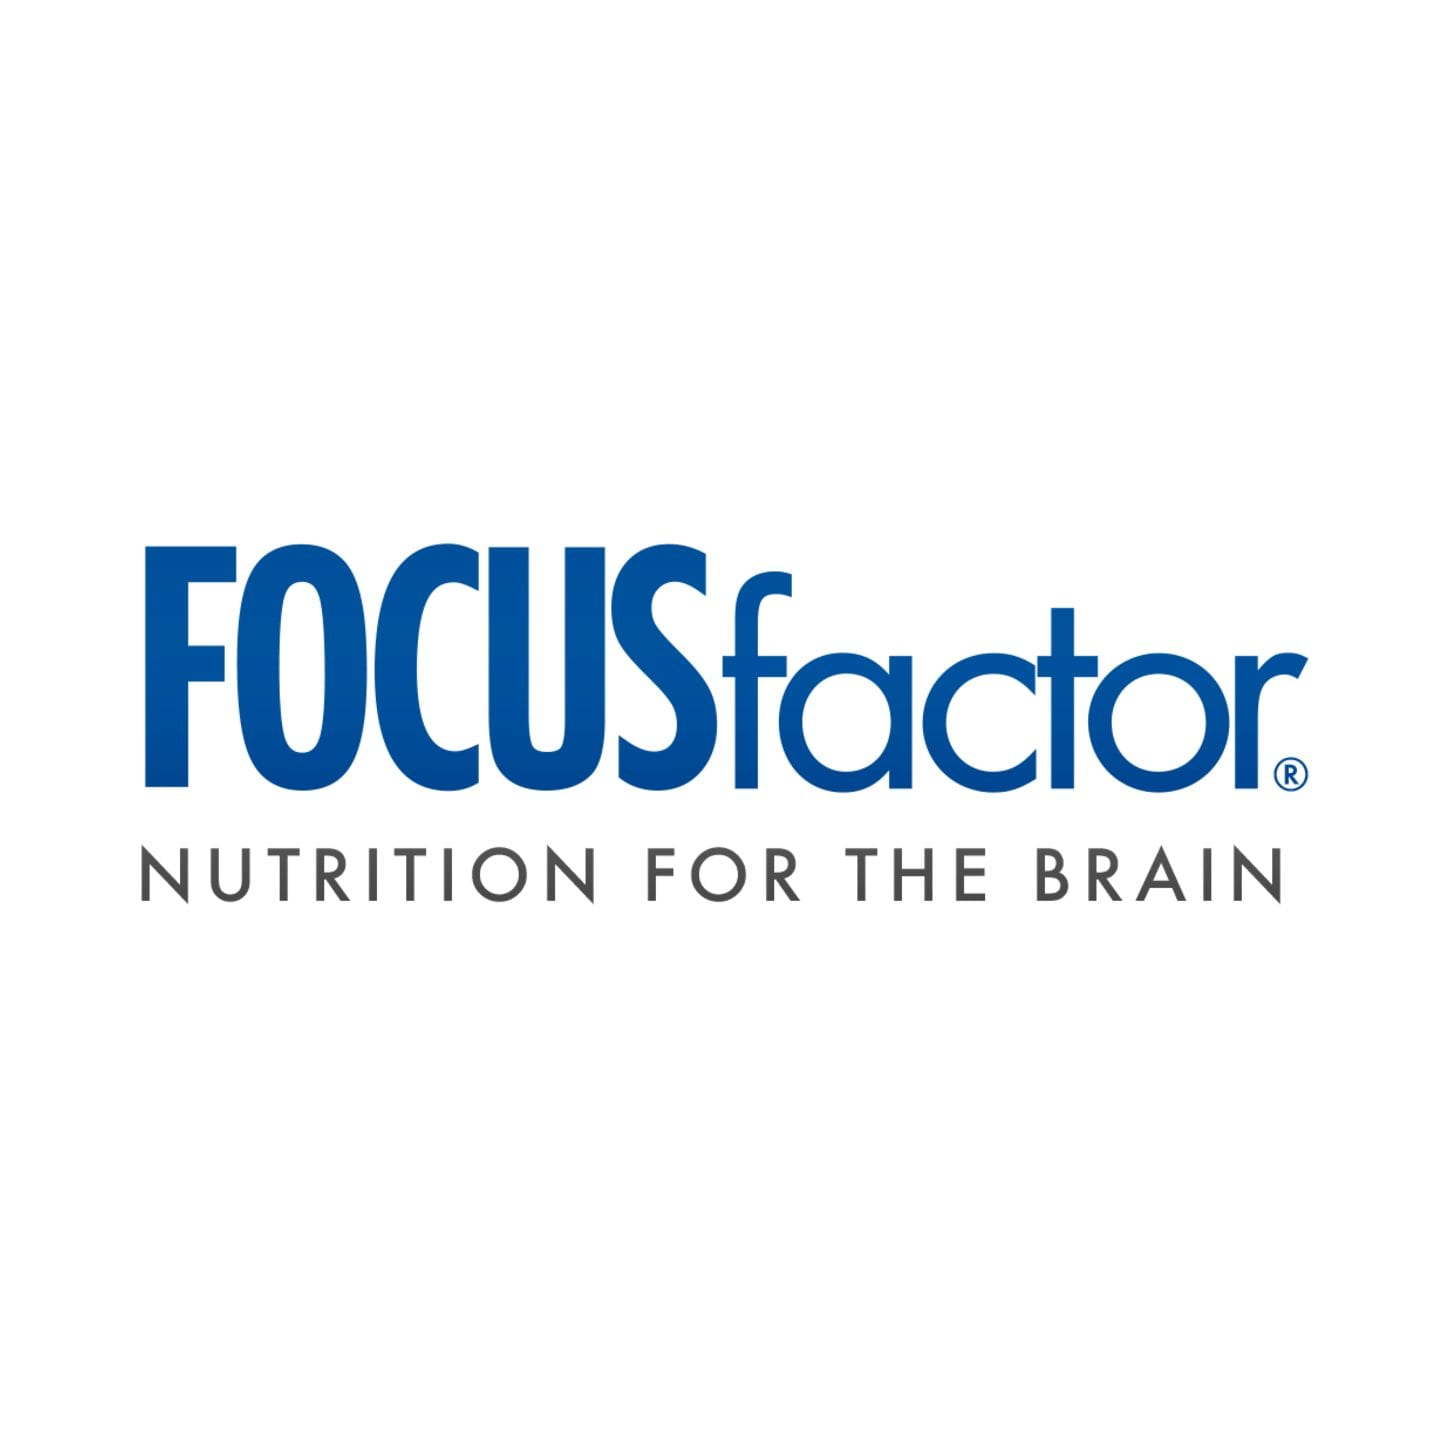 Save 30% on Focus Factor Elderberry Immunity Gummies!